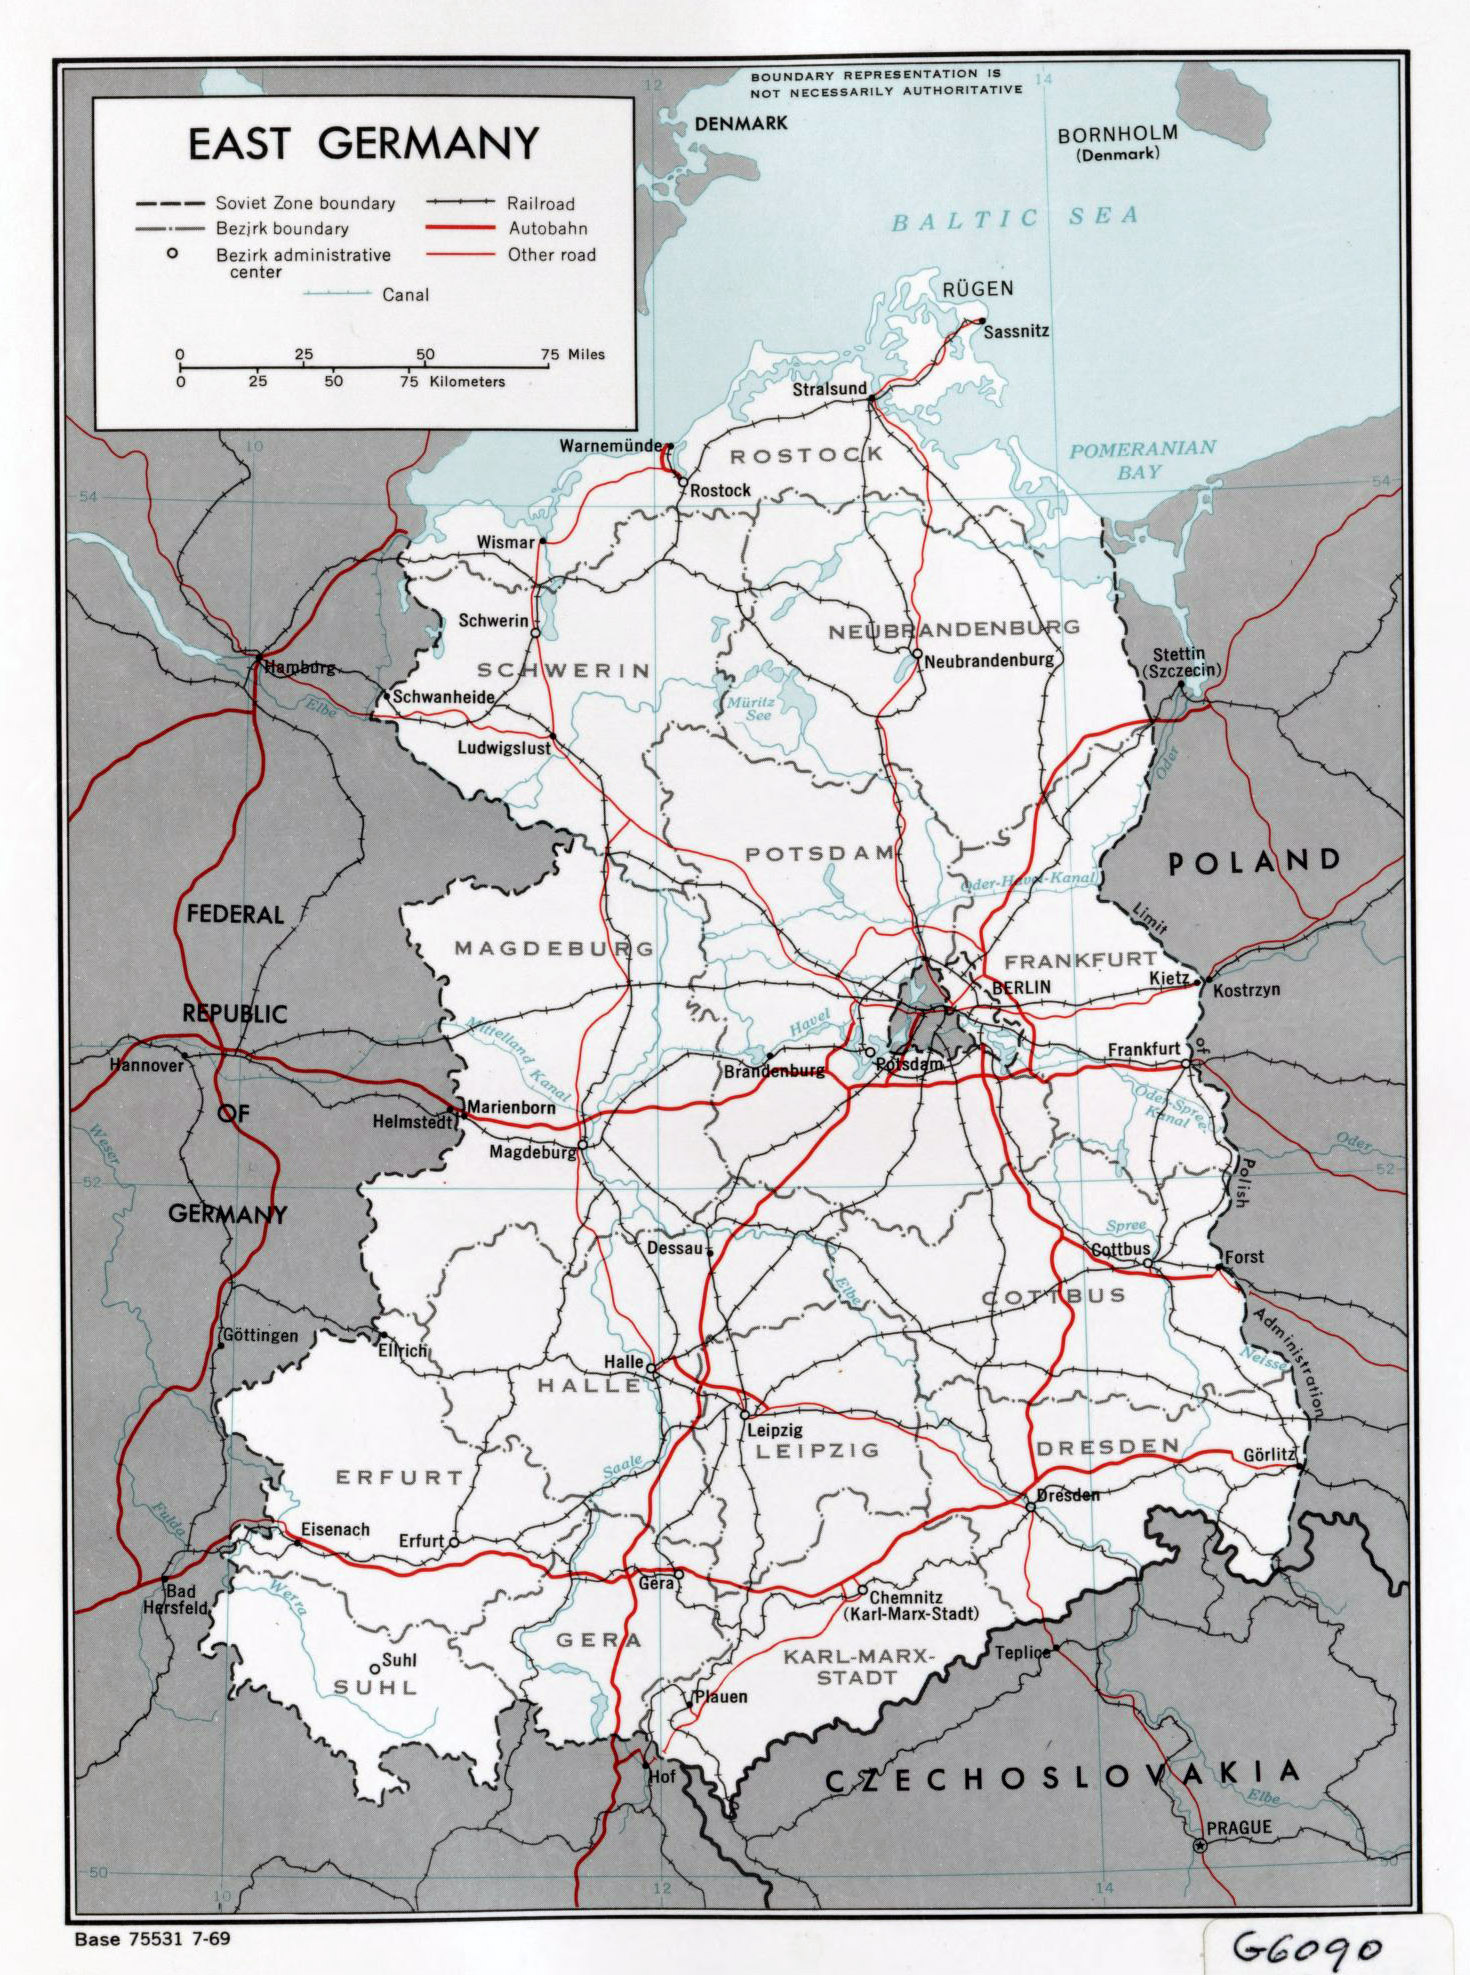 large political and administrative map of east germany with roads railroads and major cities